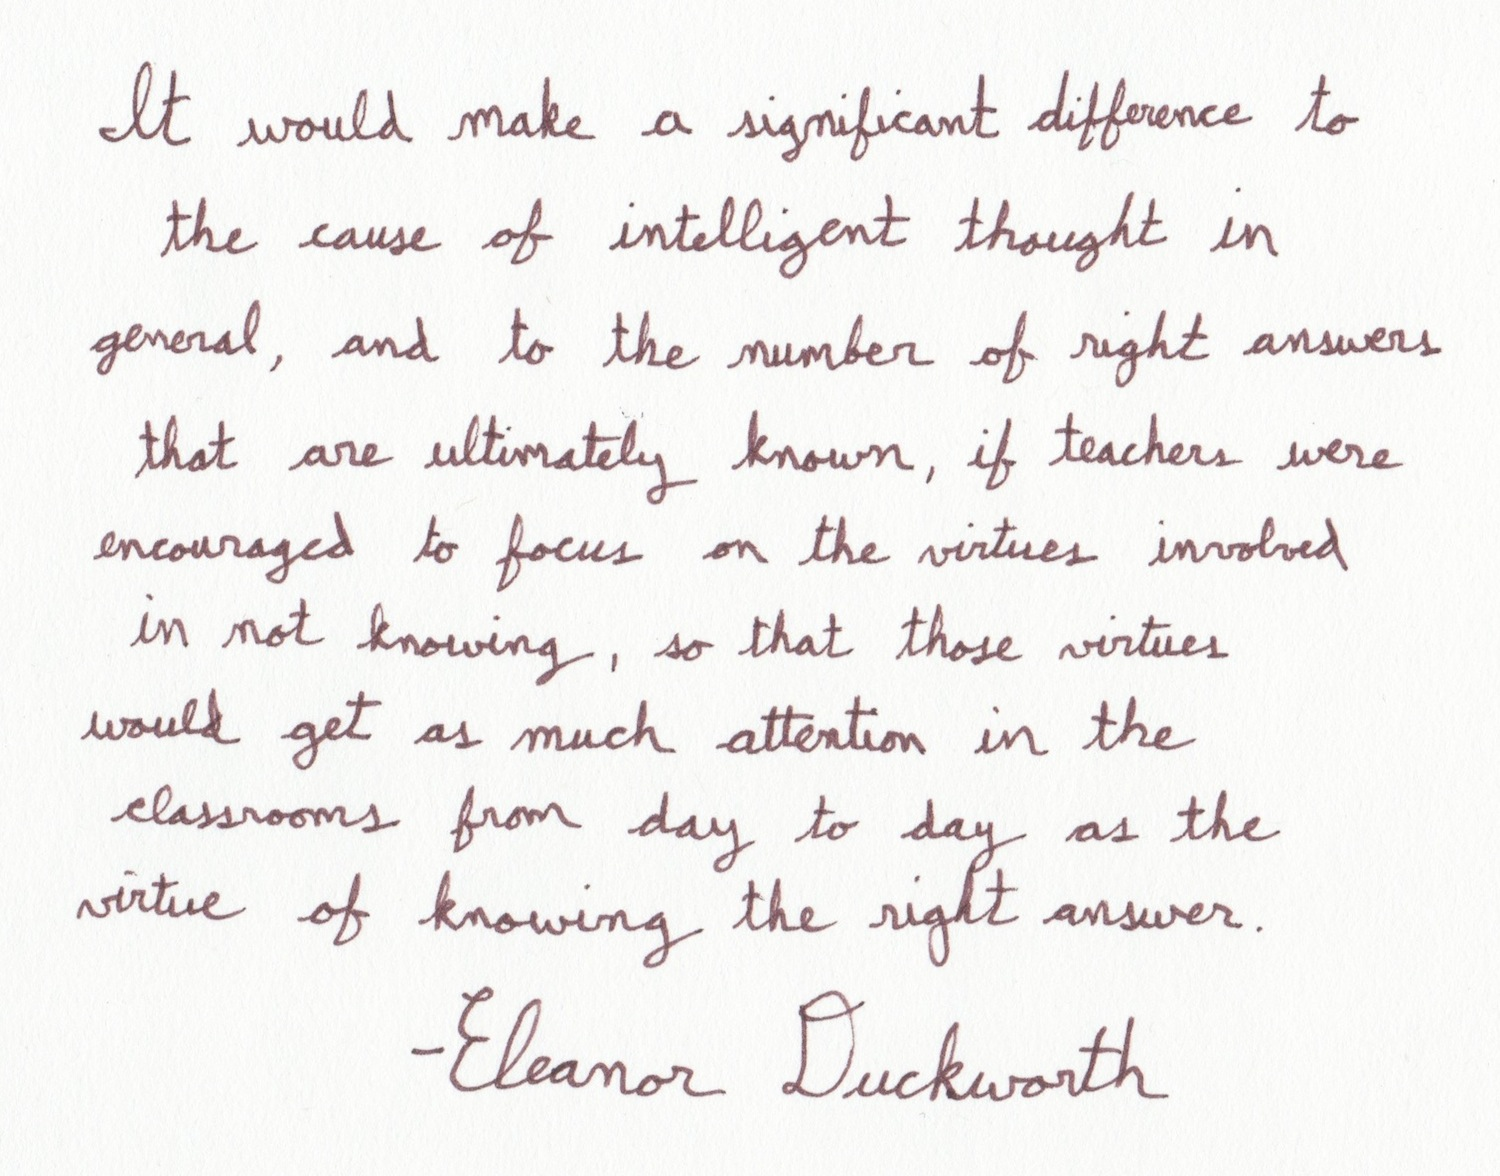 The Graphic Recorder - Handwritten Quotes - Eleanor Duckworth - The Cause of Intelligent Thought